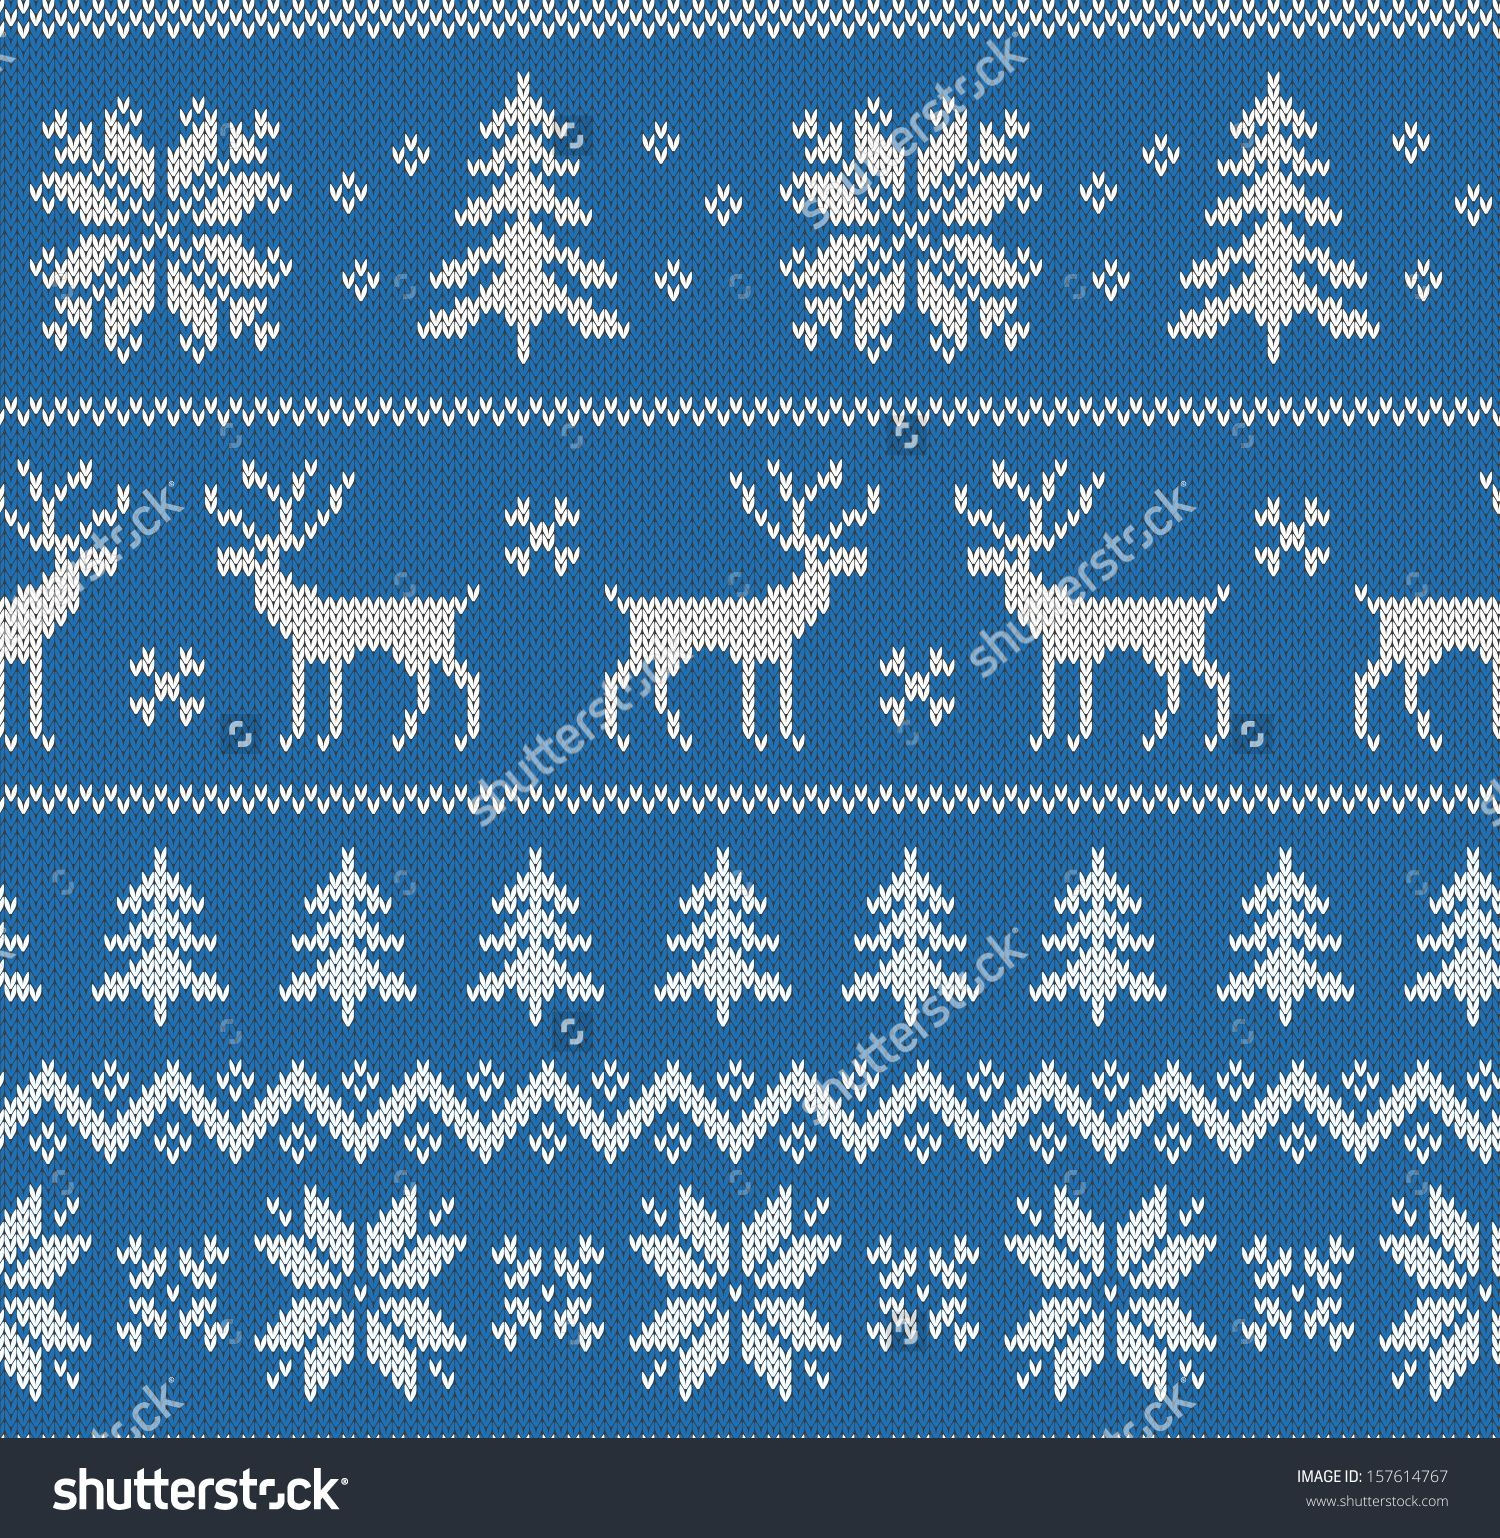 Seamless pattern with imitation of knitted winter sweater design seamless pattern with imitation of knitted winter sweater design deer snowflake and christmas tree bankloansurffo Images